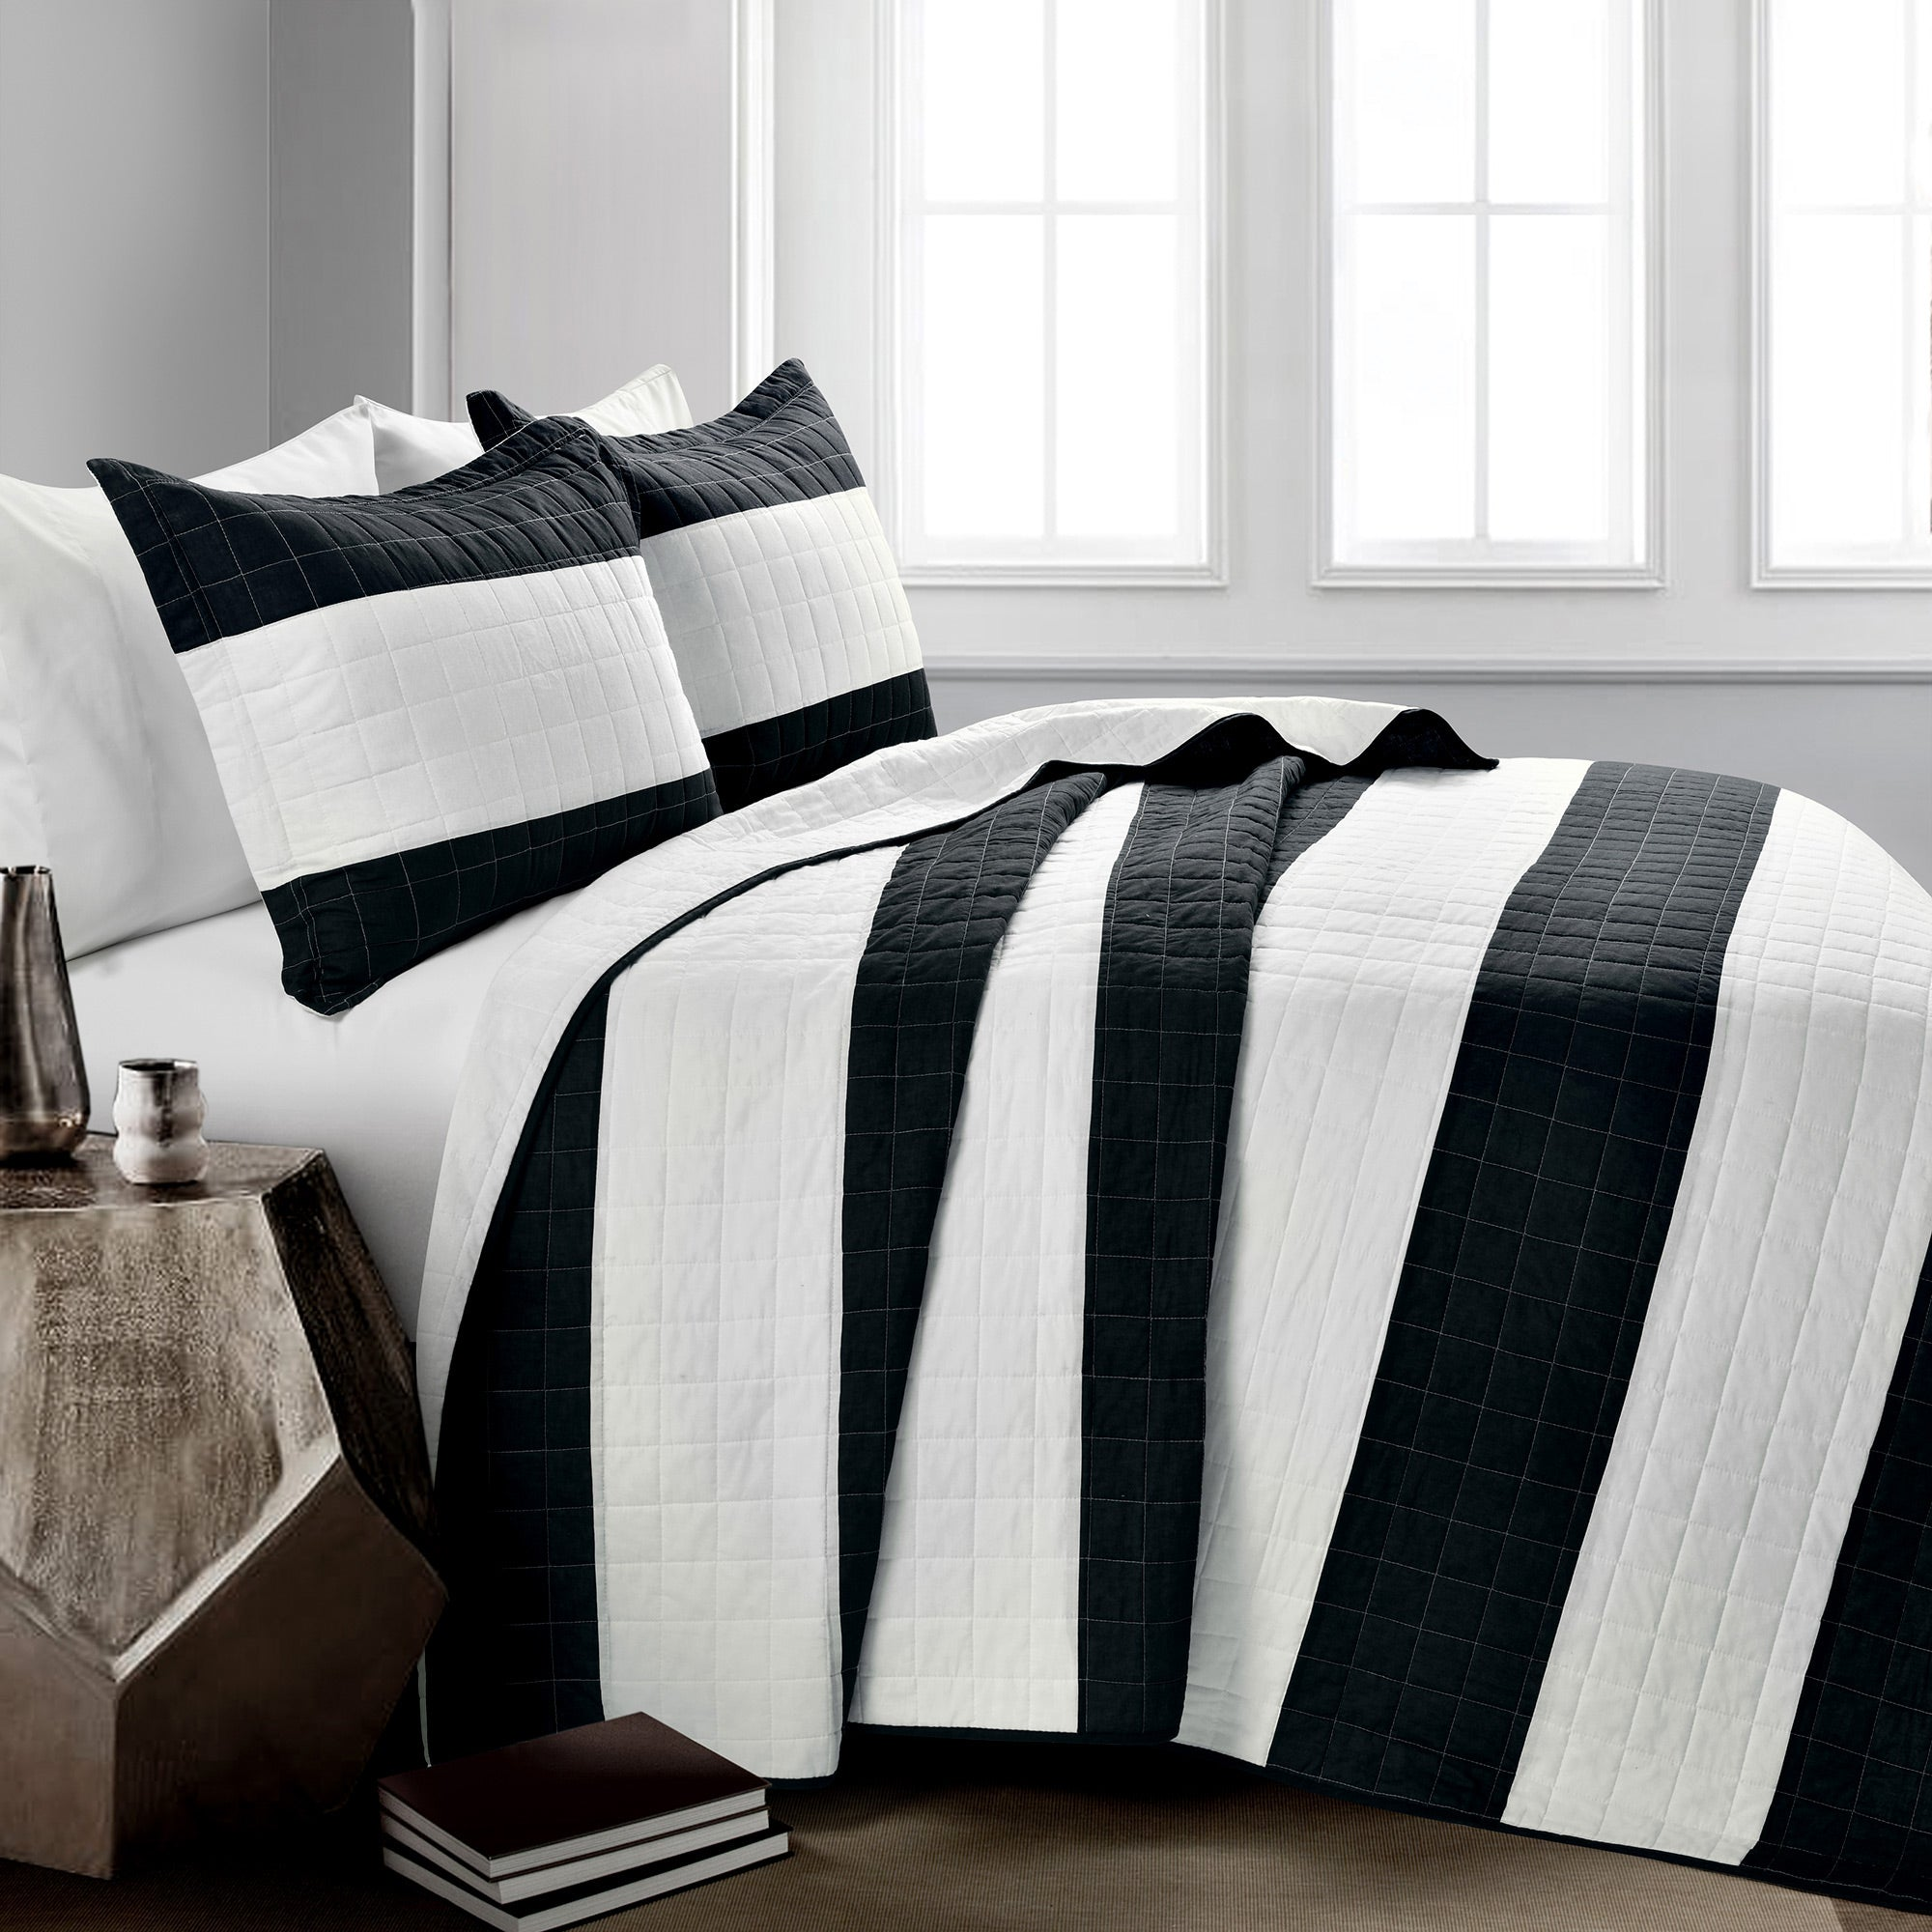 Stripe 3 Piece Quilt Set Lush Decor Www Lushdecor Com Lushdecor